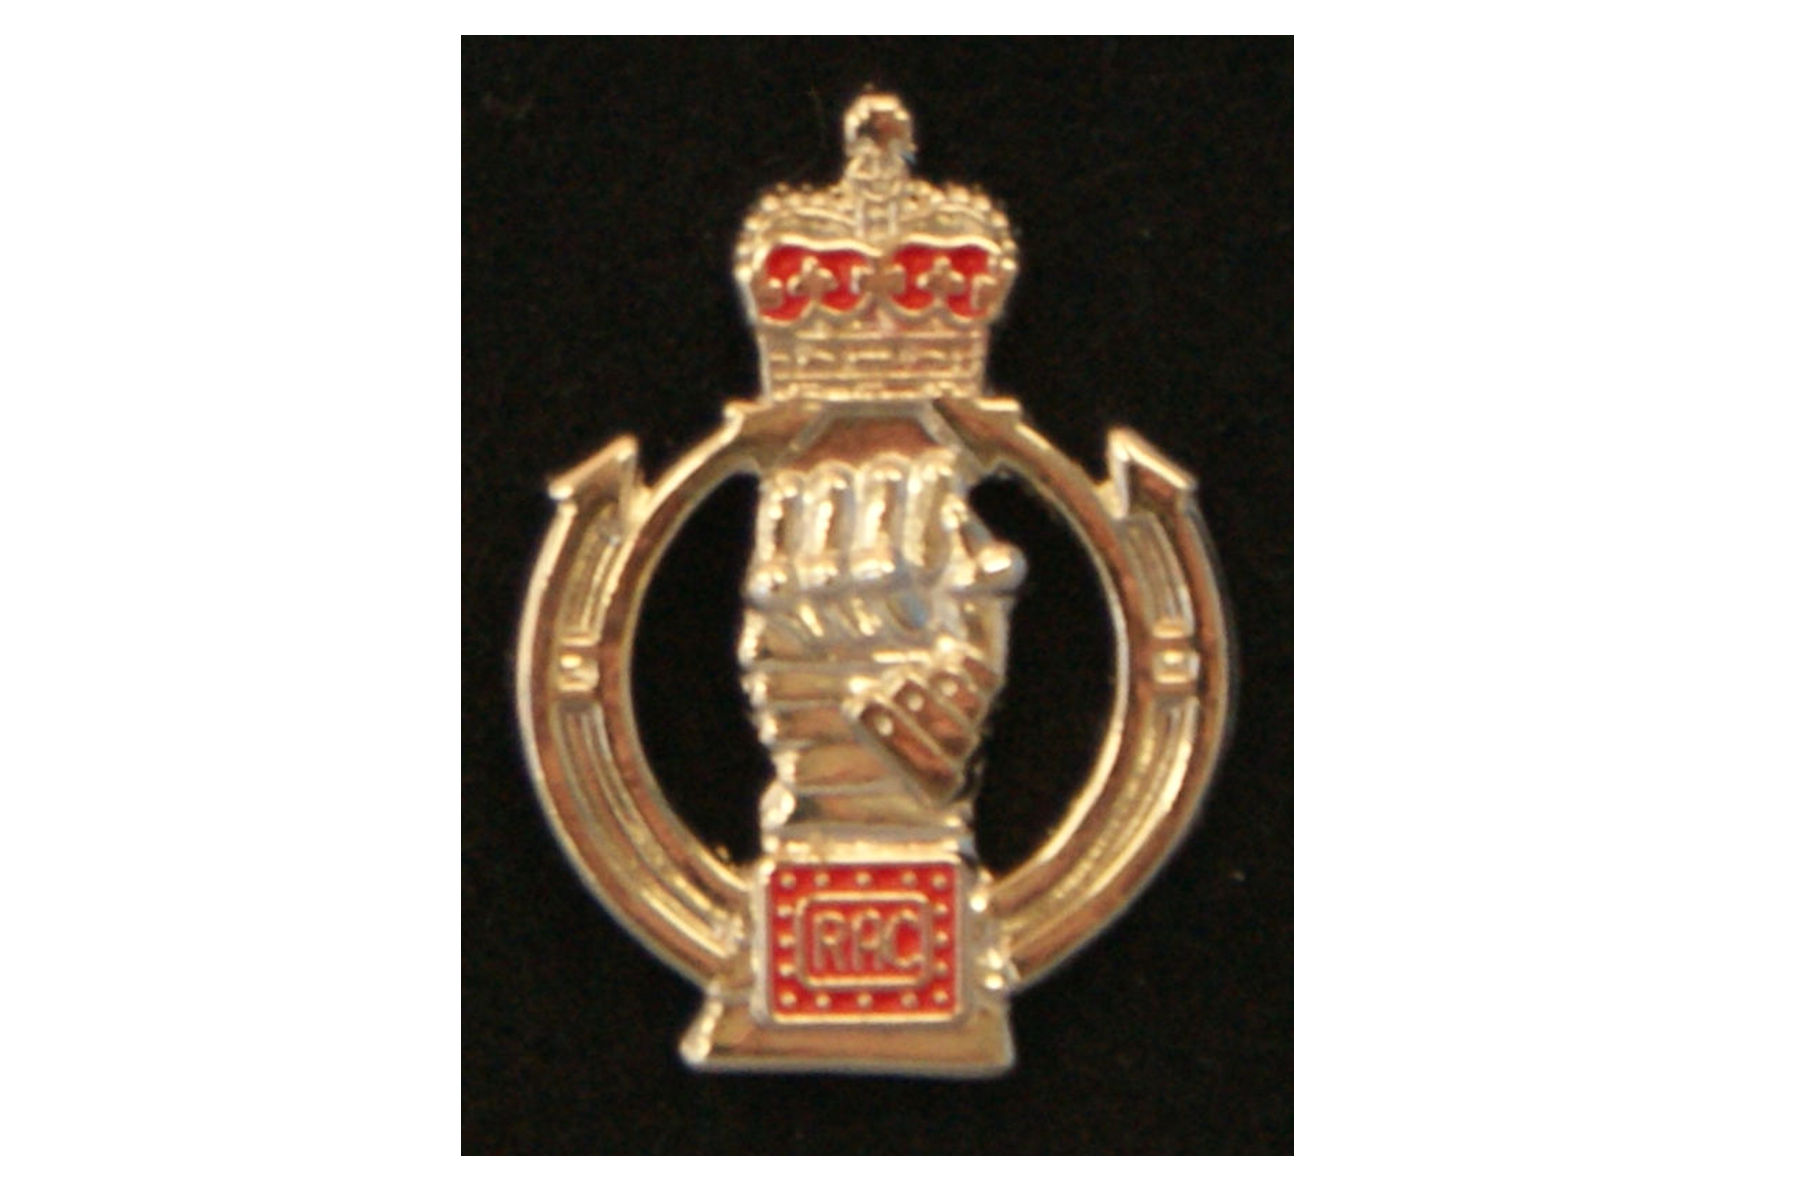 The Royal Armoured Corps